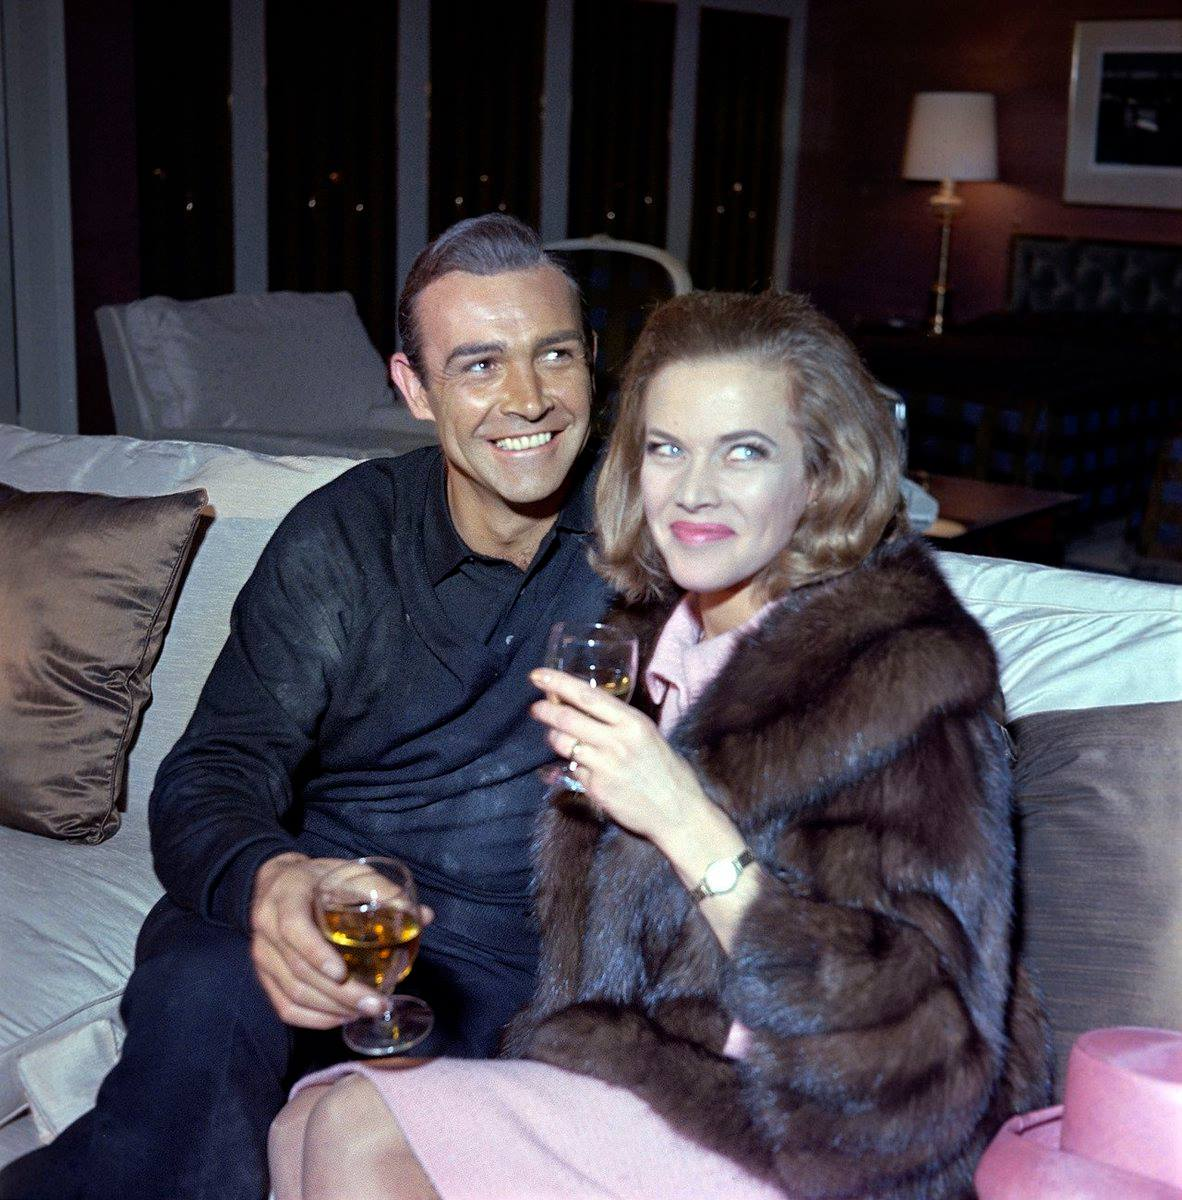 A moment with Sean Connery and Honor Blackman -- aka James Bond and Pussy Galore in Goldfinger, 1964. <br>http://pic.twitter.com/wLtAyOFeho